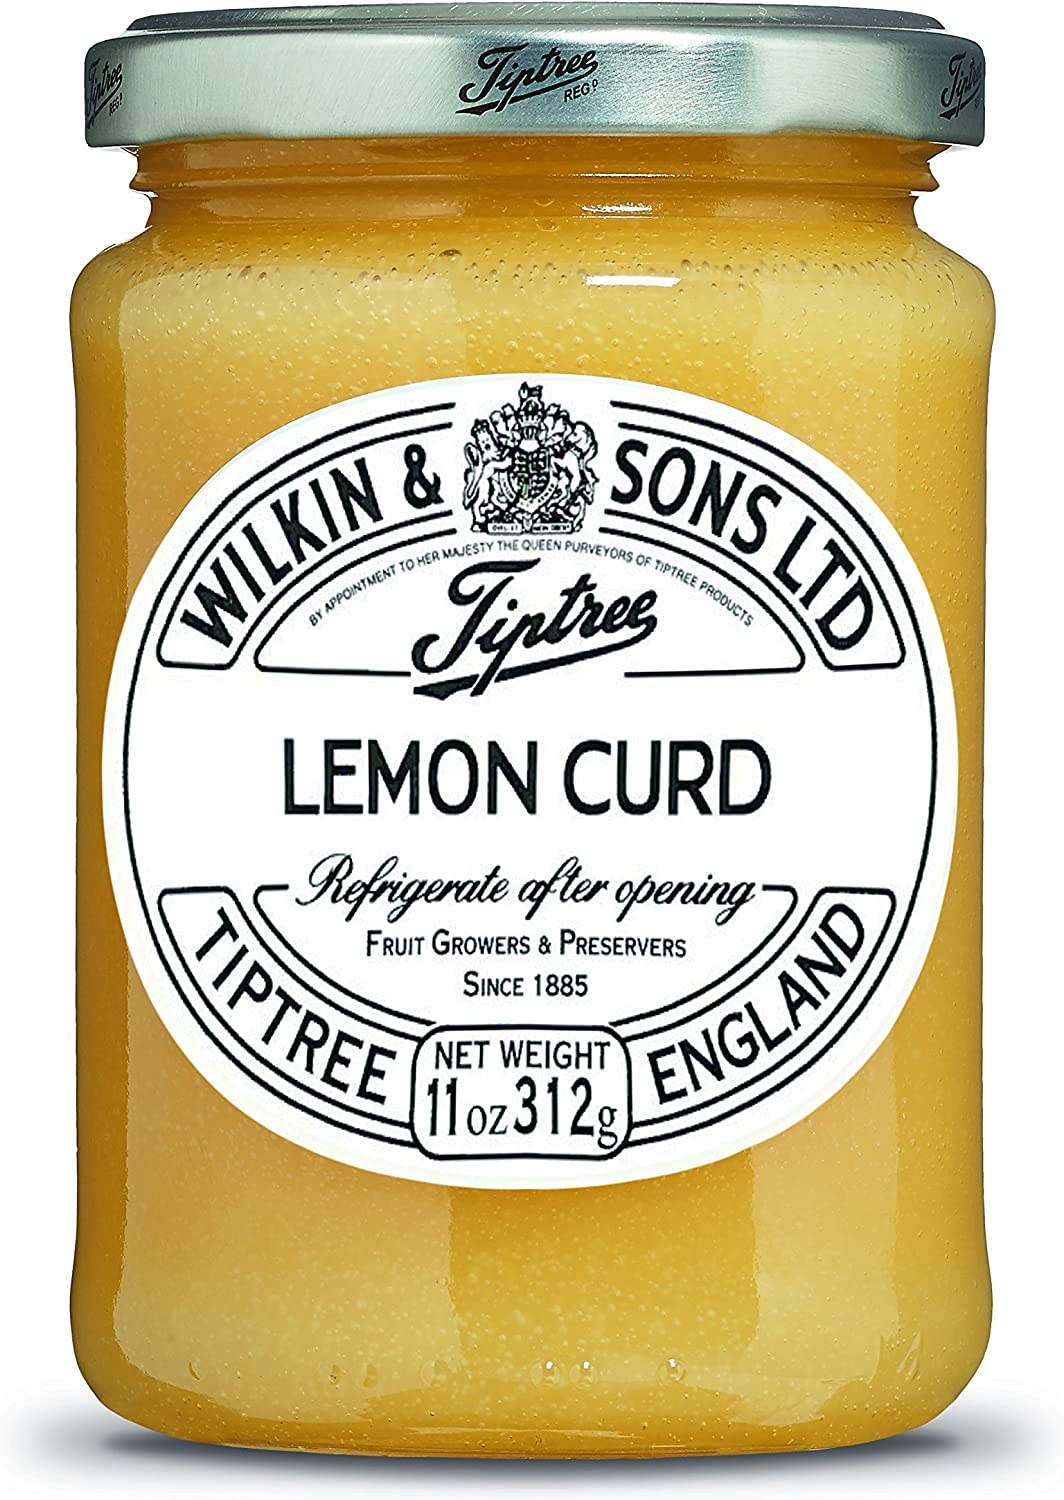 Tiptree Lemon Curd, 11 Ounce Jar (312g)